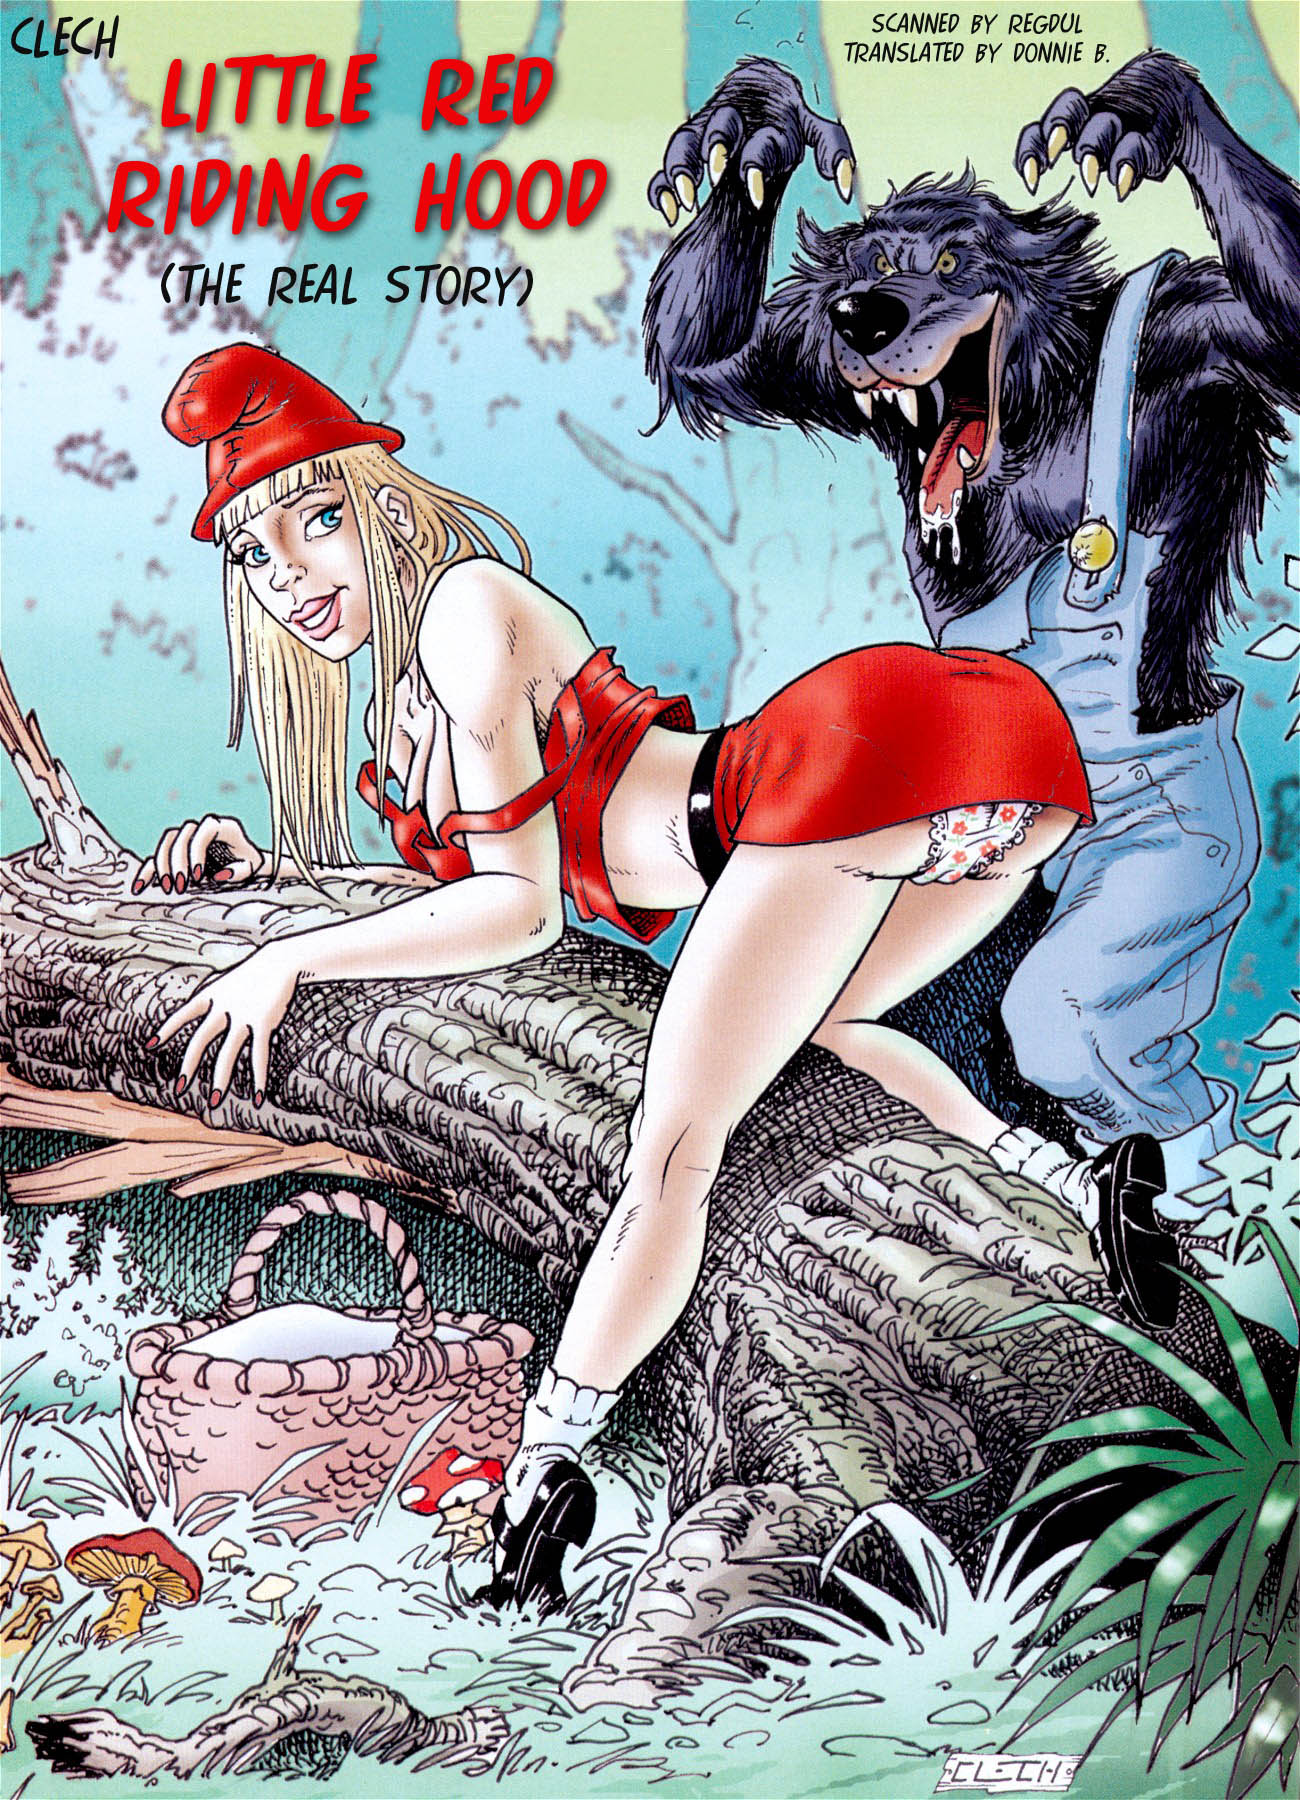 The fall of little red riding hood